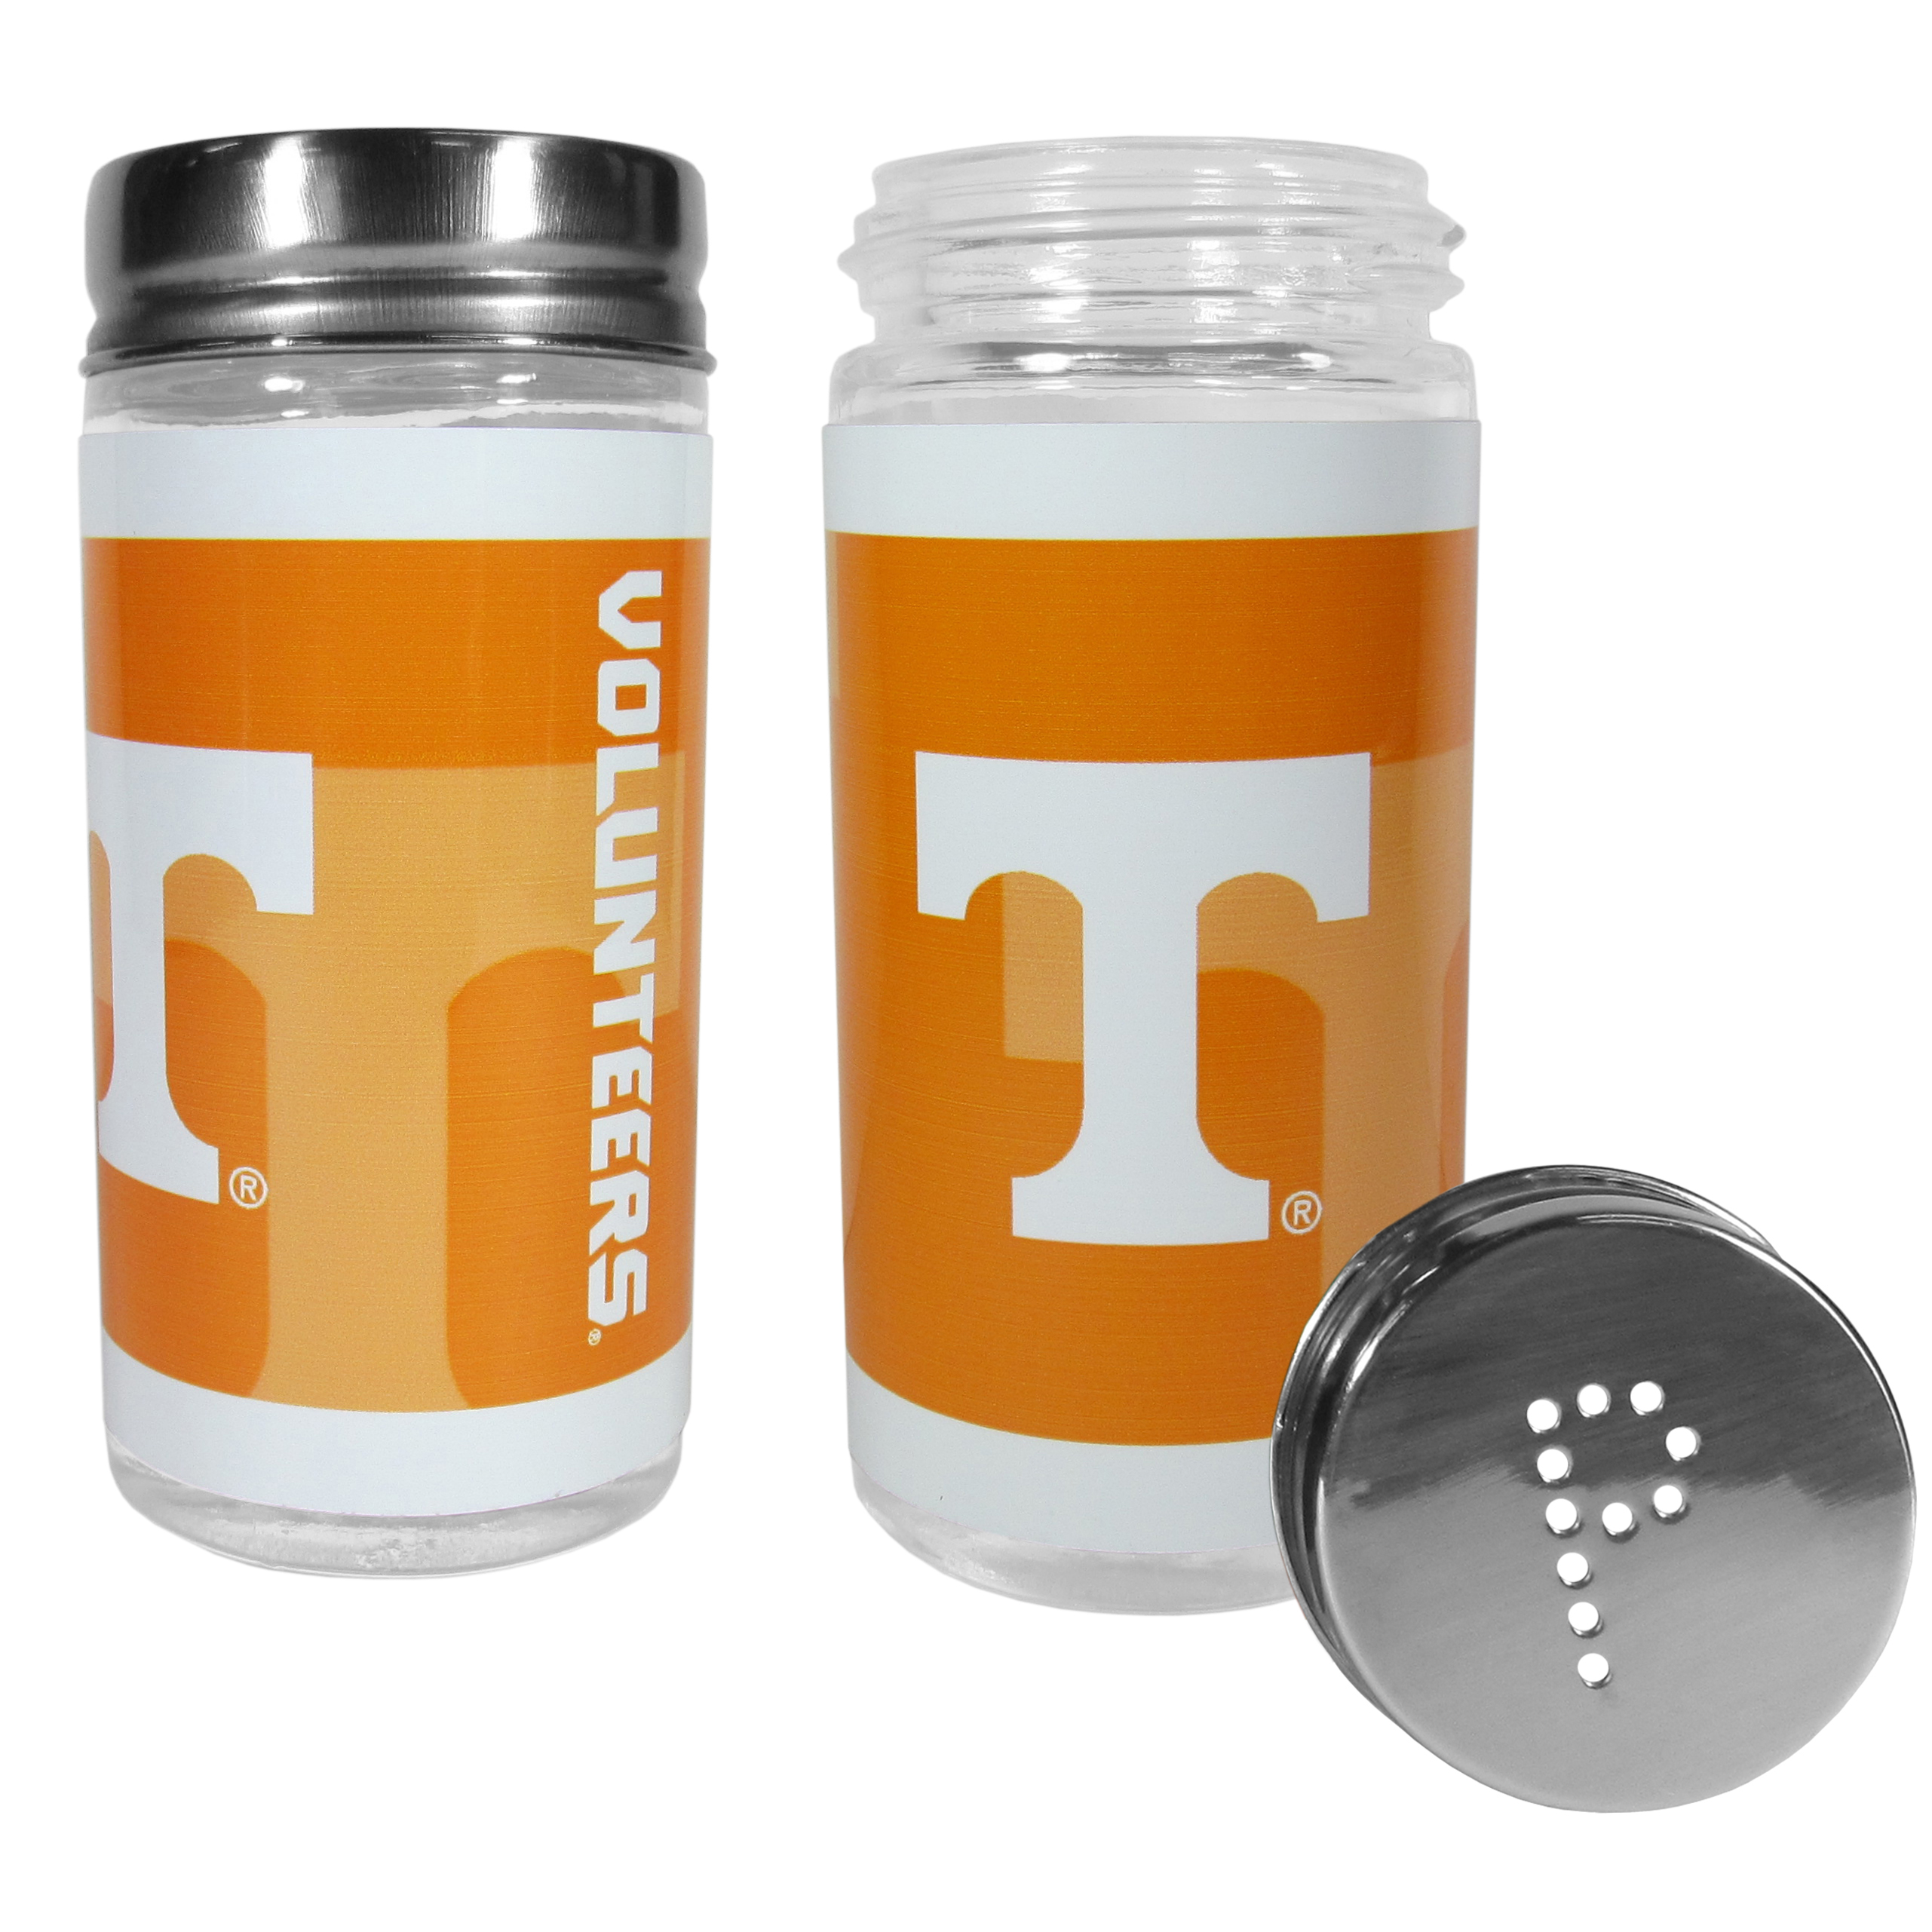 Tennessee Volunteers Tailgater Salt and Pepper Shakers - No tailgate party is complete without your Tennessee Volunteers salt & pepper shakers featuring bright team graphics. The glass shakers are 3.75 inches tall and the screw top lids have holes that spell out P and S. These team shakers are a great grill accessory whether you are barbecuing on the patio, picnicing or having a game day party.